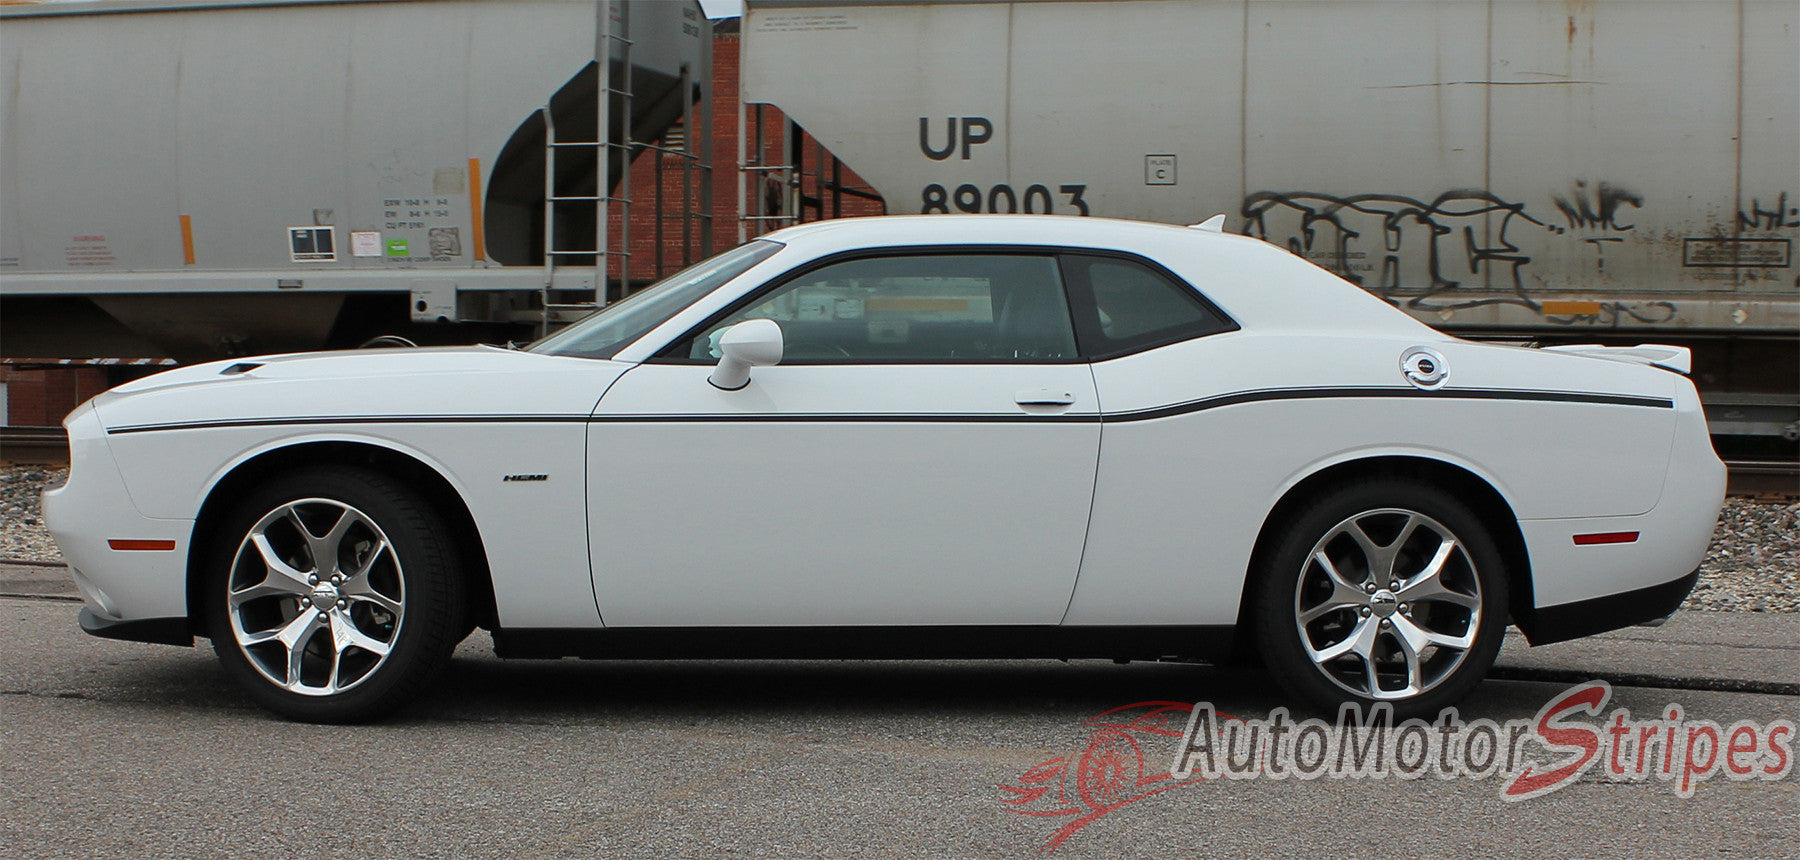 2011 2020 Dodge Challenger Door Stripes Sxt Side Decals Vinyl Graphic Auto Motor Stripes Decals Vinyl Graphics And 3m Striping Kits